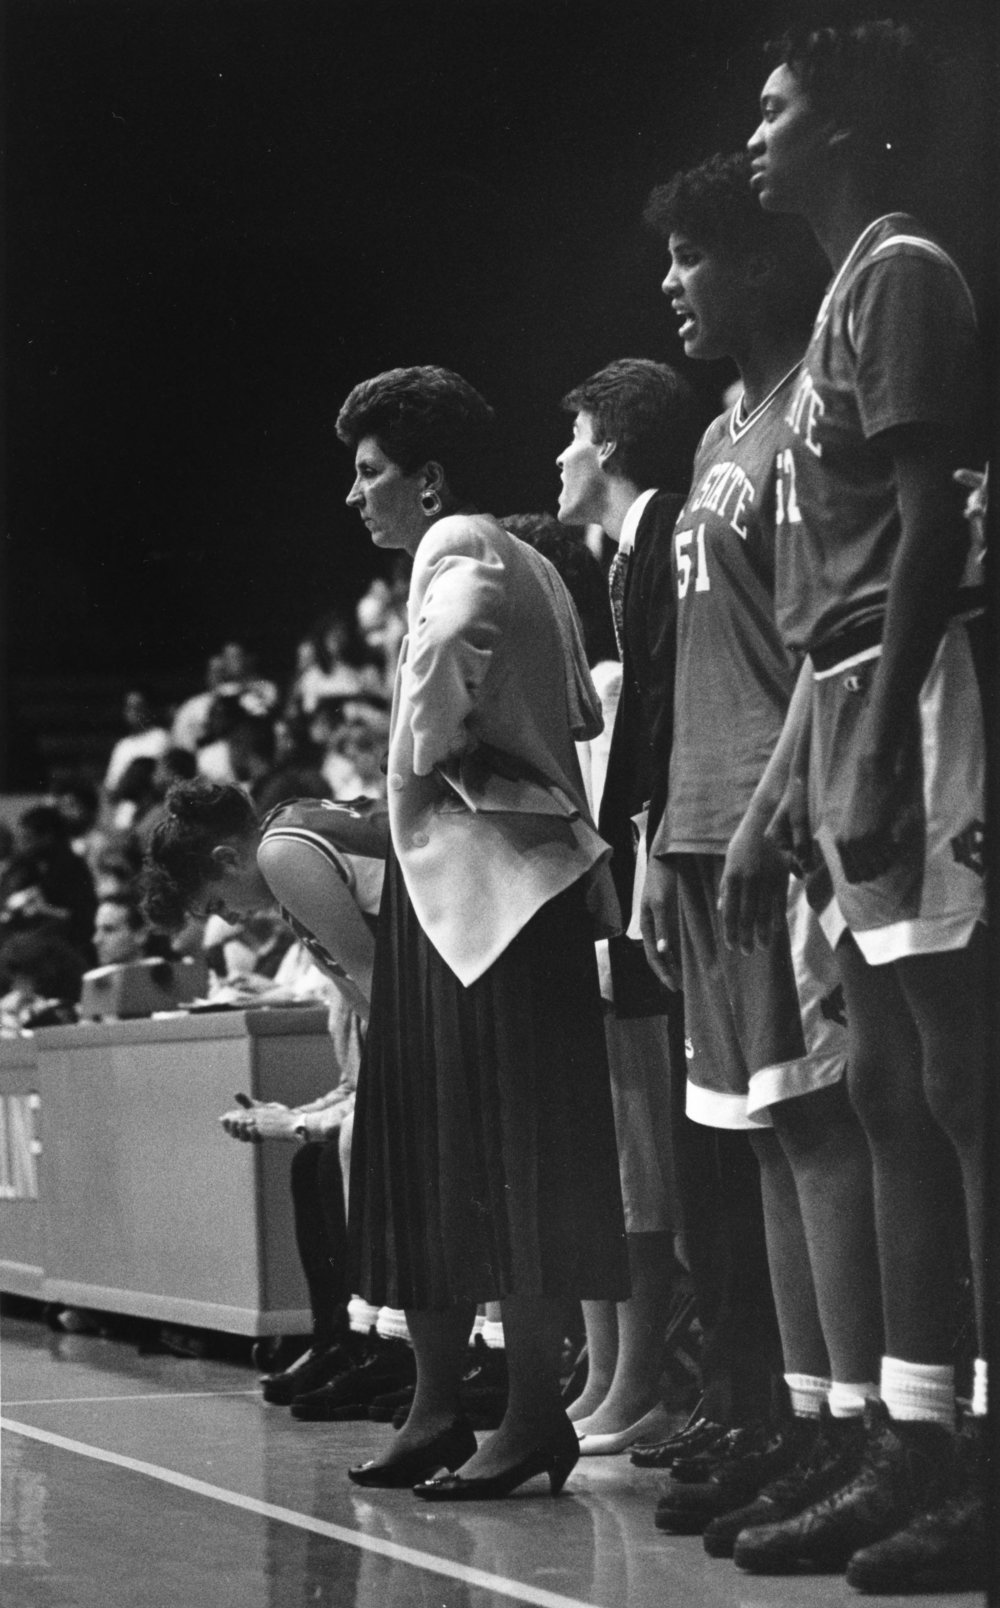 "Yow spent 34 years as the head coach at NC State, leading the Wolfpack to 20 NCAA Tournament appearances during that stretch. She also coached the 1988 Olympic team to a gold medal, and with 737 career wins, she is one of seven women's coaches in the Naismith Hall of Fame. Her impact off the court was no less significant, and through the cancer research fund that she established in 2007 her legacy continues to touch people outside the world of basketball.""I feel like I had zero control over getting cancer, but I have 100 percent control over how I will respond to dealing with cancer. I'm battling an opponent, the greatest opponent, the greatest foe that I've battled. The home court of the archrival is nothing in comparison to this. Kay, don't wallow in self pity. You know you will drown. It's ok at moments to have some pity but swish your feet and get out. Just swish and get out.When life kicks you, let it kick you forward. Never let the urgent get in the way of the important."" #playforkay"